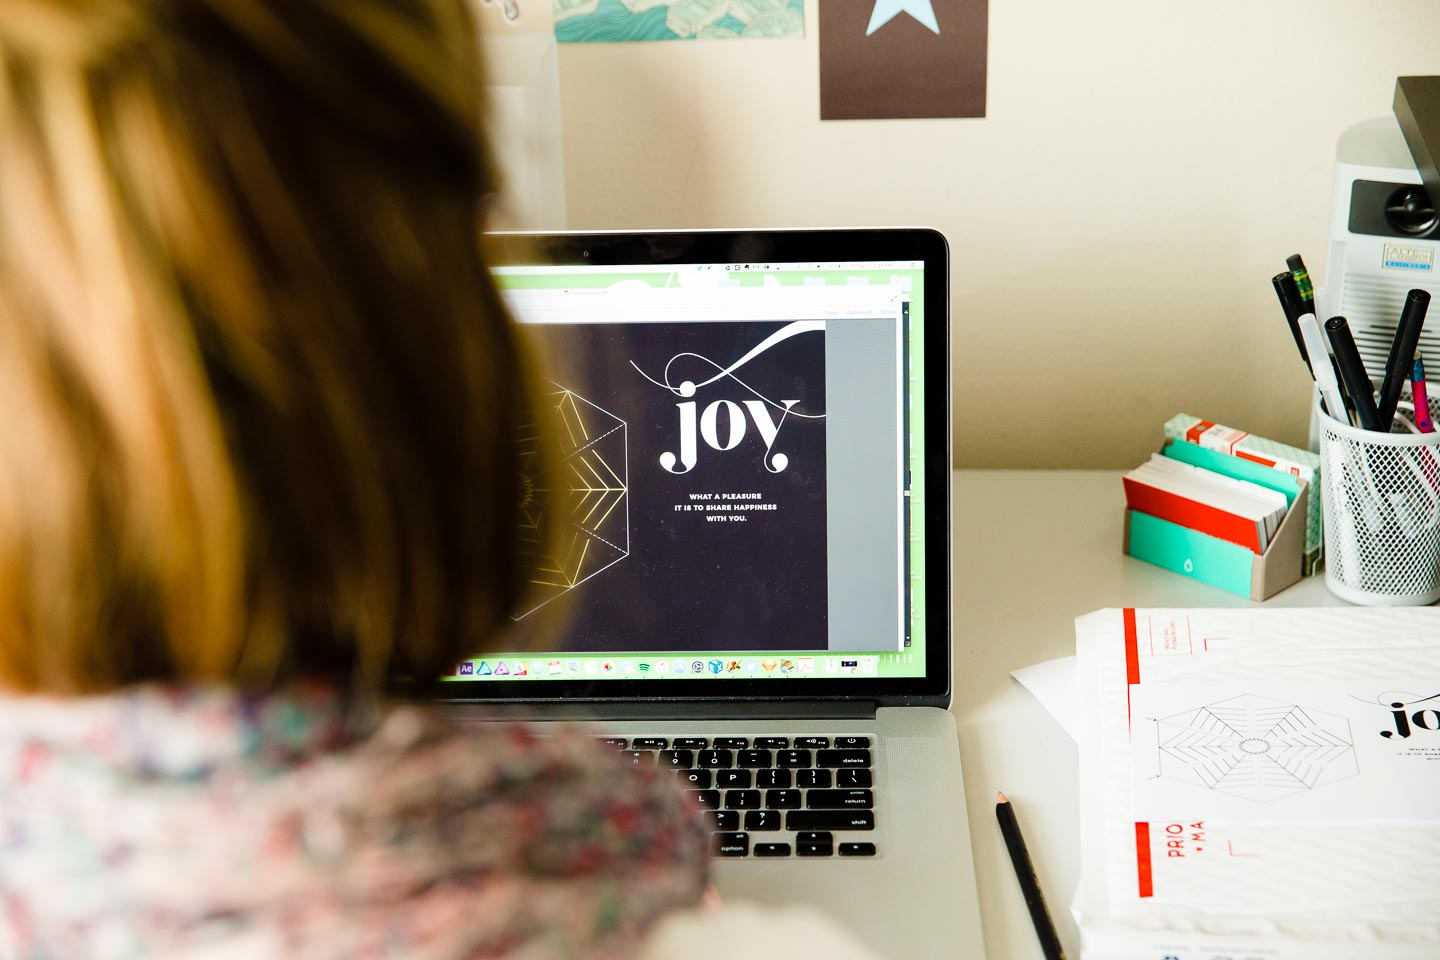 A woman working on a laptop creating a black postcard that reads Joy next to a circular pattern